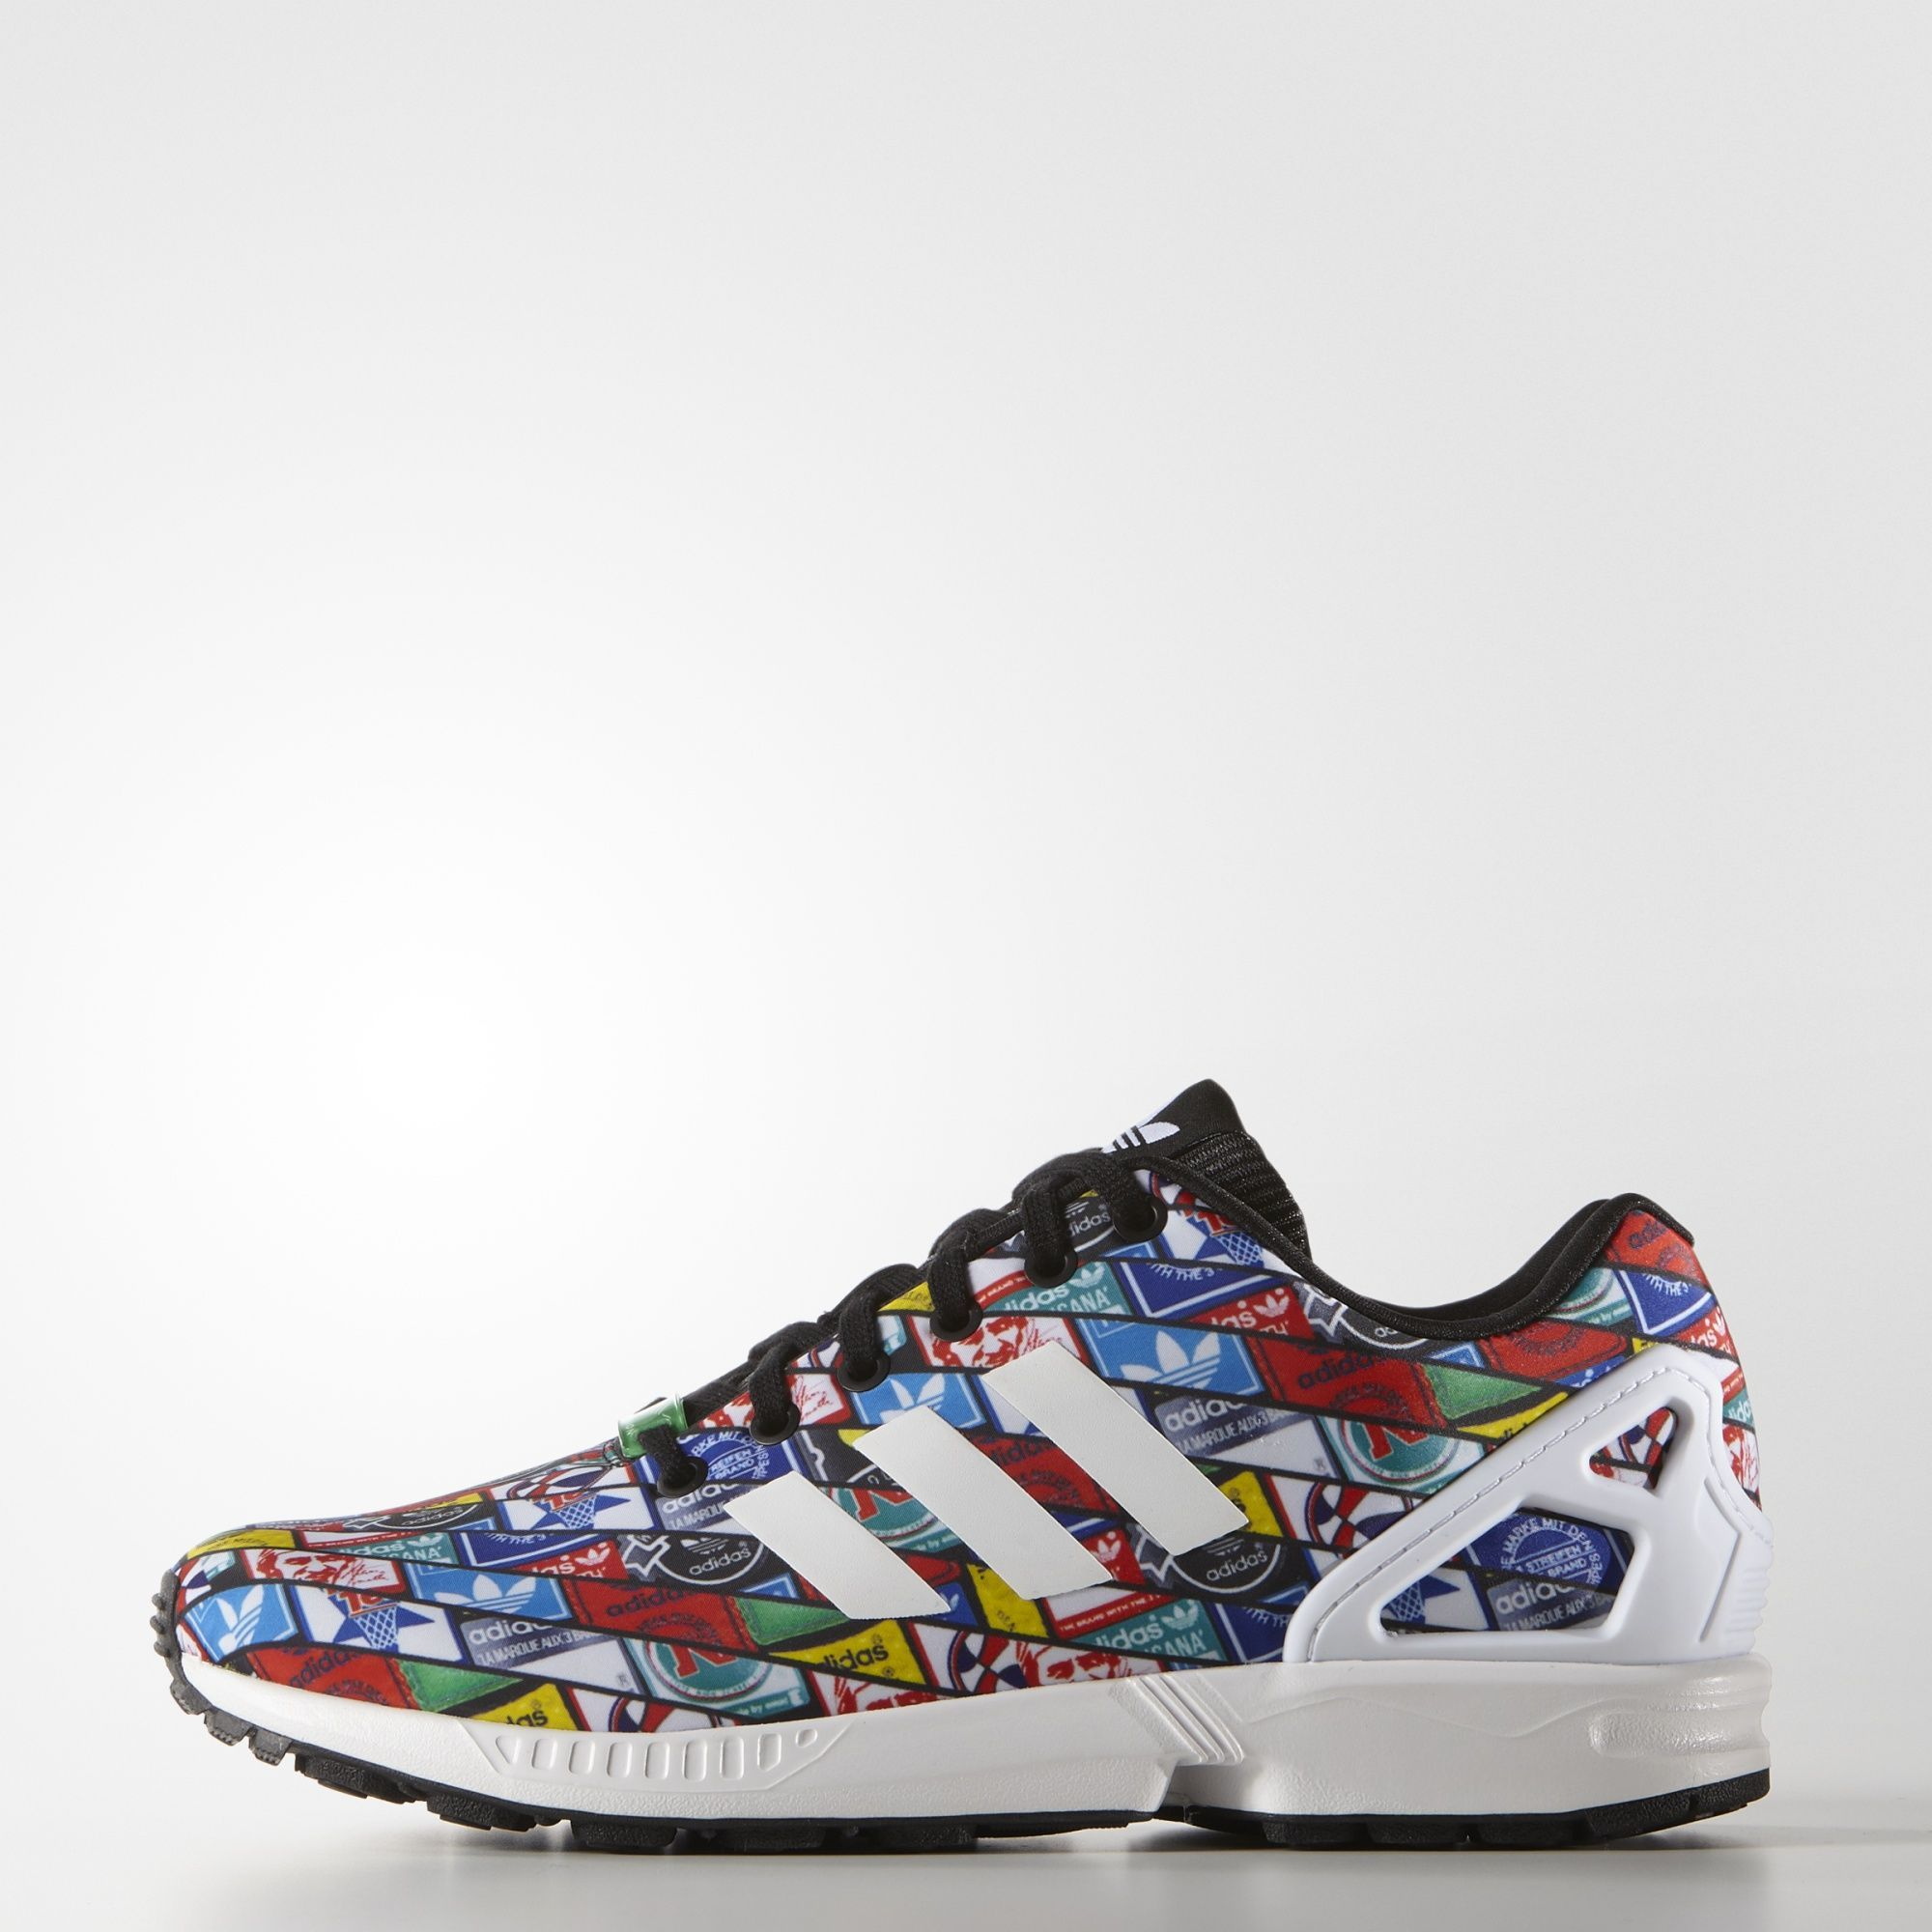 Blue Purple Casual Unisex Adidas Zx Flux Breathable Running Shoes Cheap